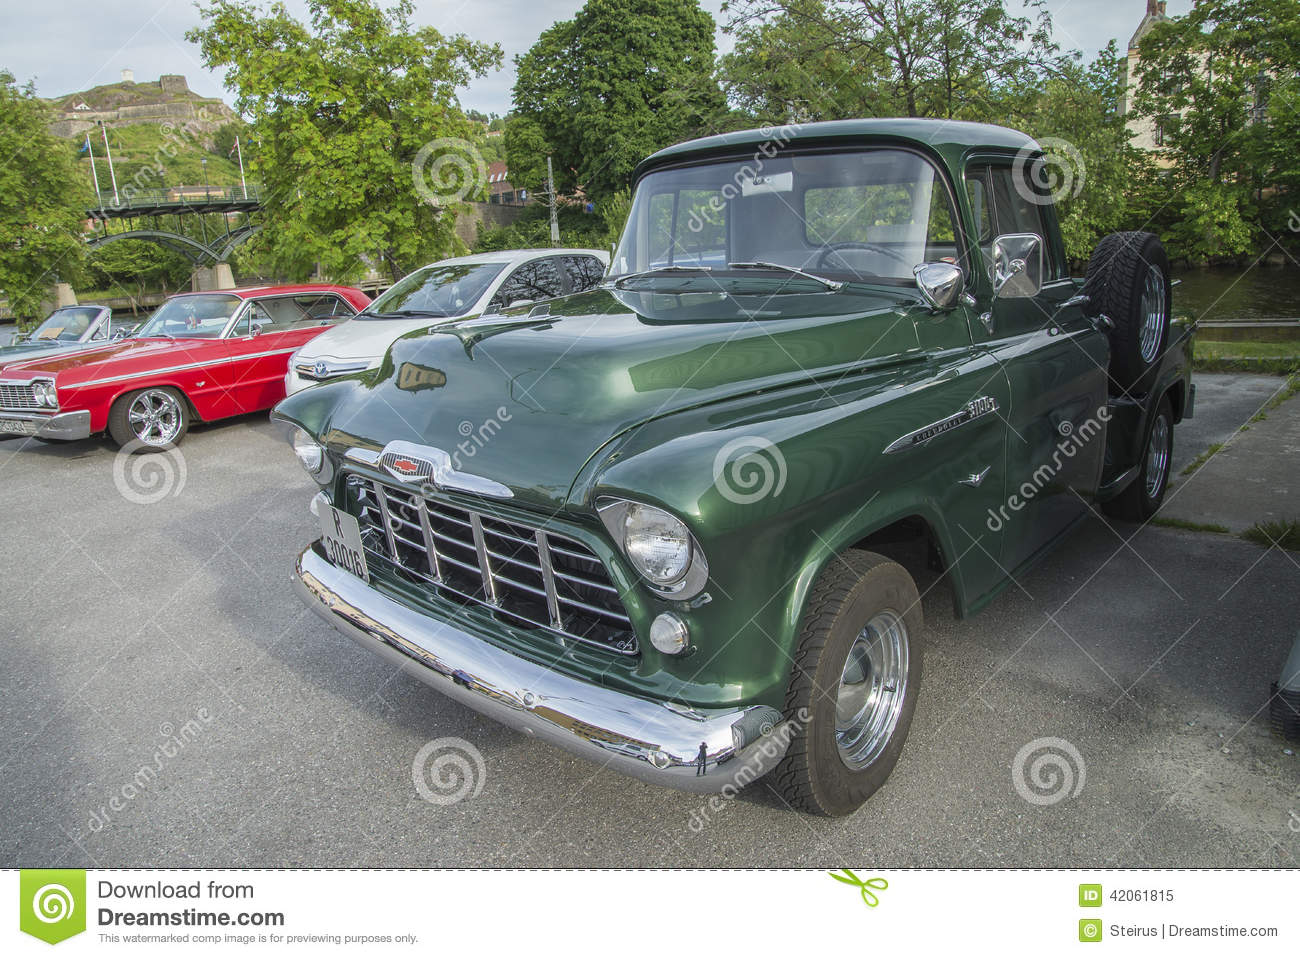 All Chevy 1956 chevrolet 3100 : 1956 Chevrolet 3100 Pickup editorial image. Image of design - 42061815